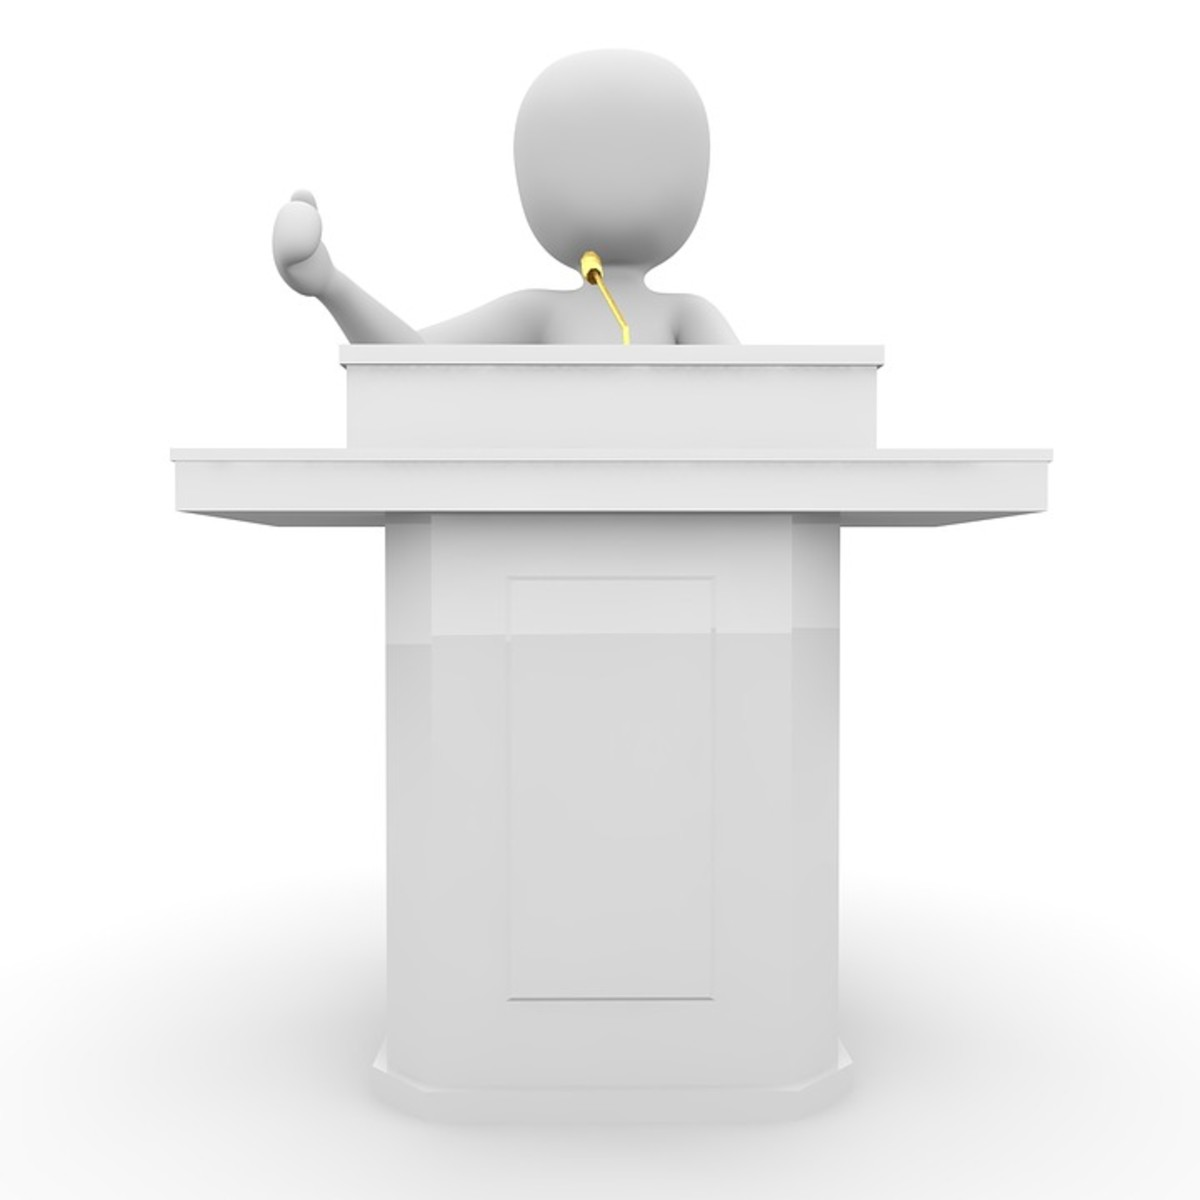 10 Tips on How to Improve Your Public Speaking Skills